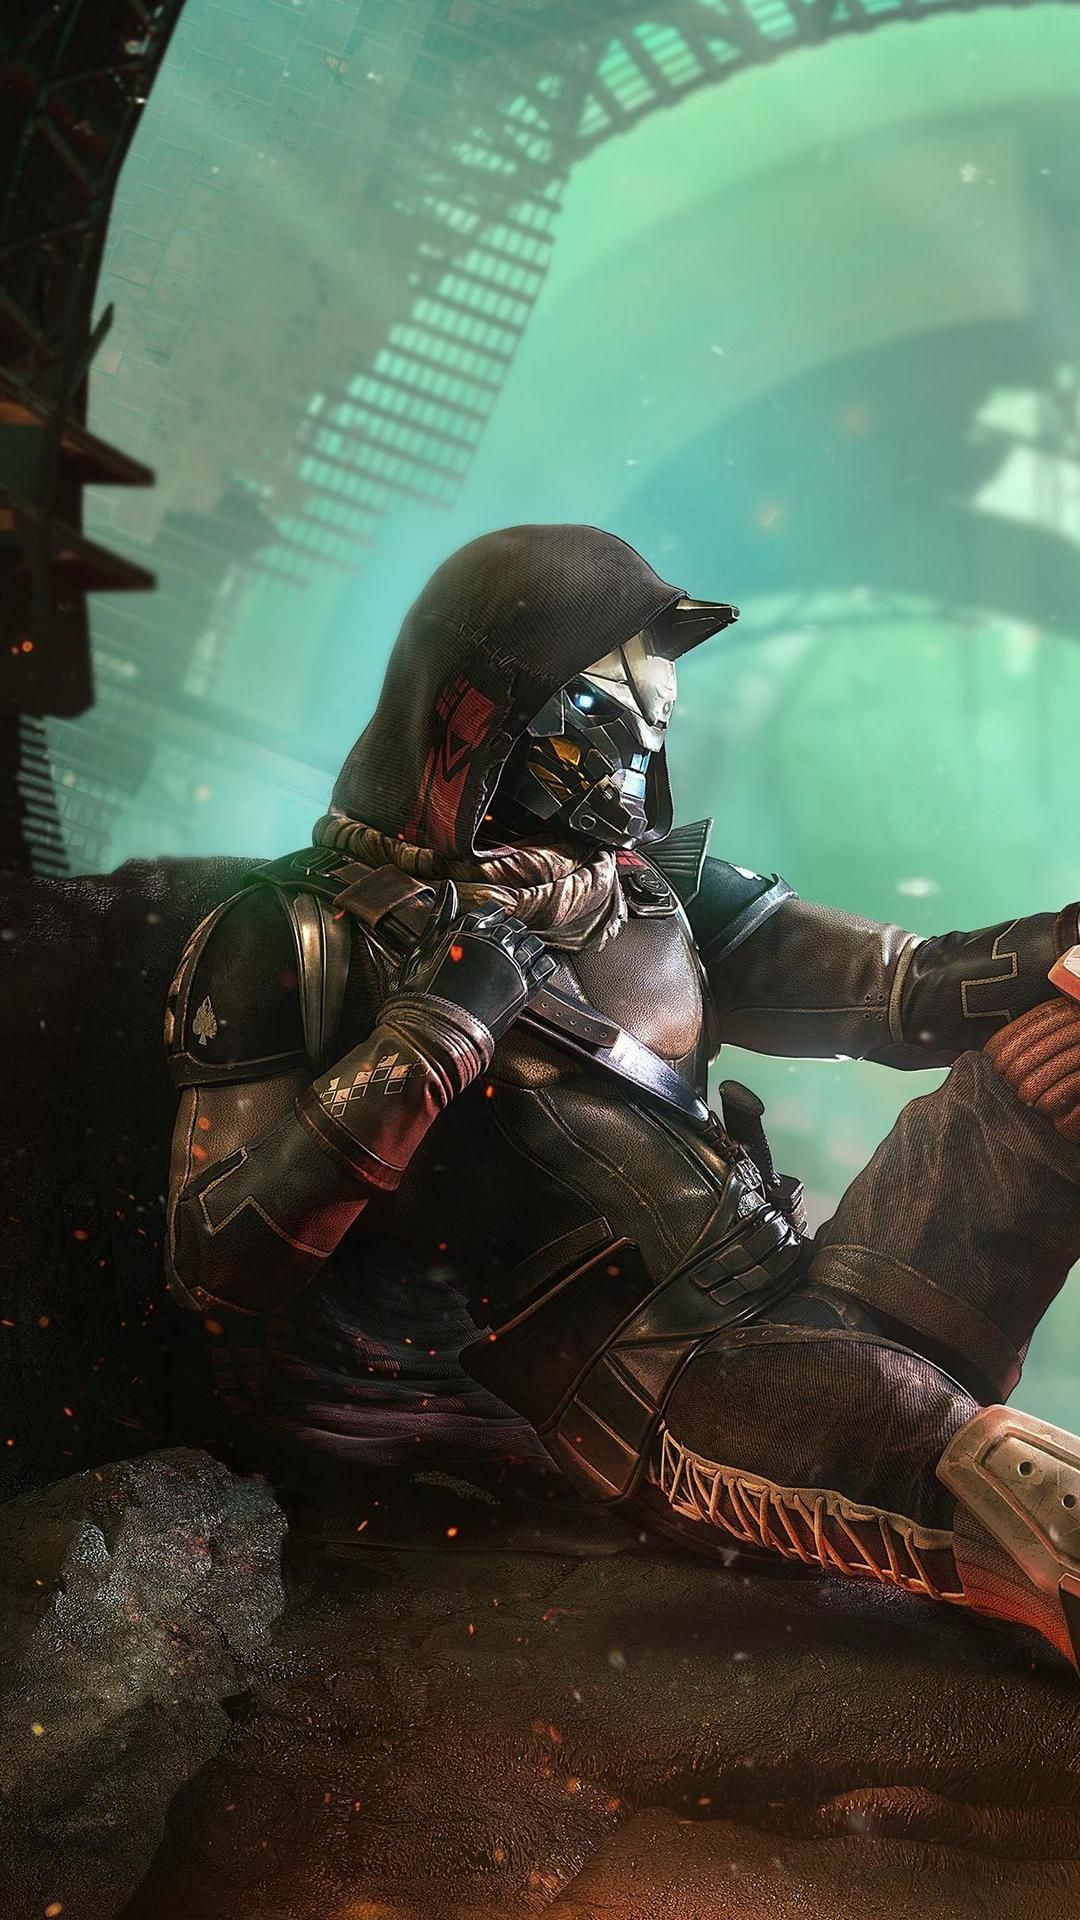 Destiny Wallpaper 1080p » Hupages » Download Iphone